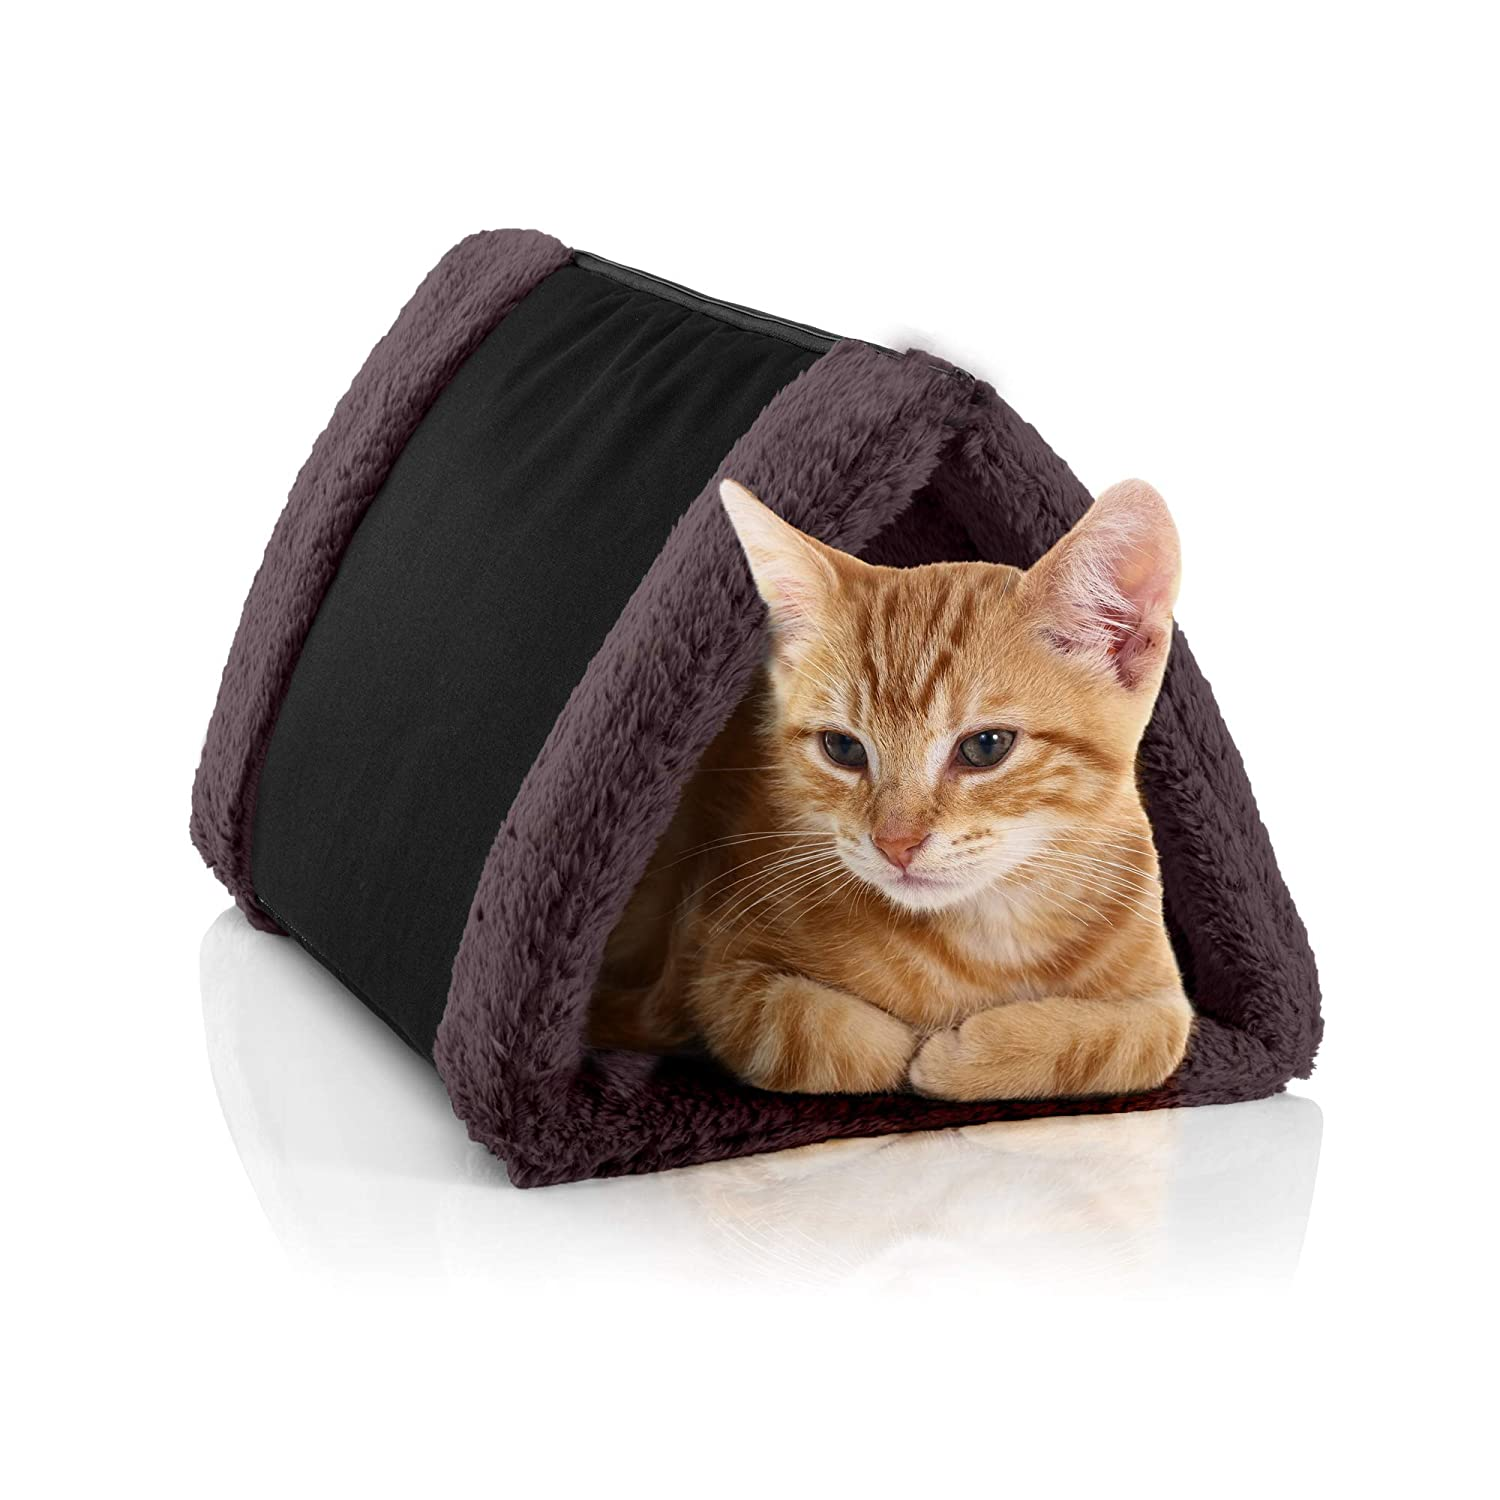 Petslover Cat Bed Cave House Bed Best For Indoor Cats Houses Heated Kitten Warm Pet Self Warming W Hoods Caves Igloo Covered Pod Felted Faux Felt Wool Cocoon Adult Cat Black Amazon In